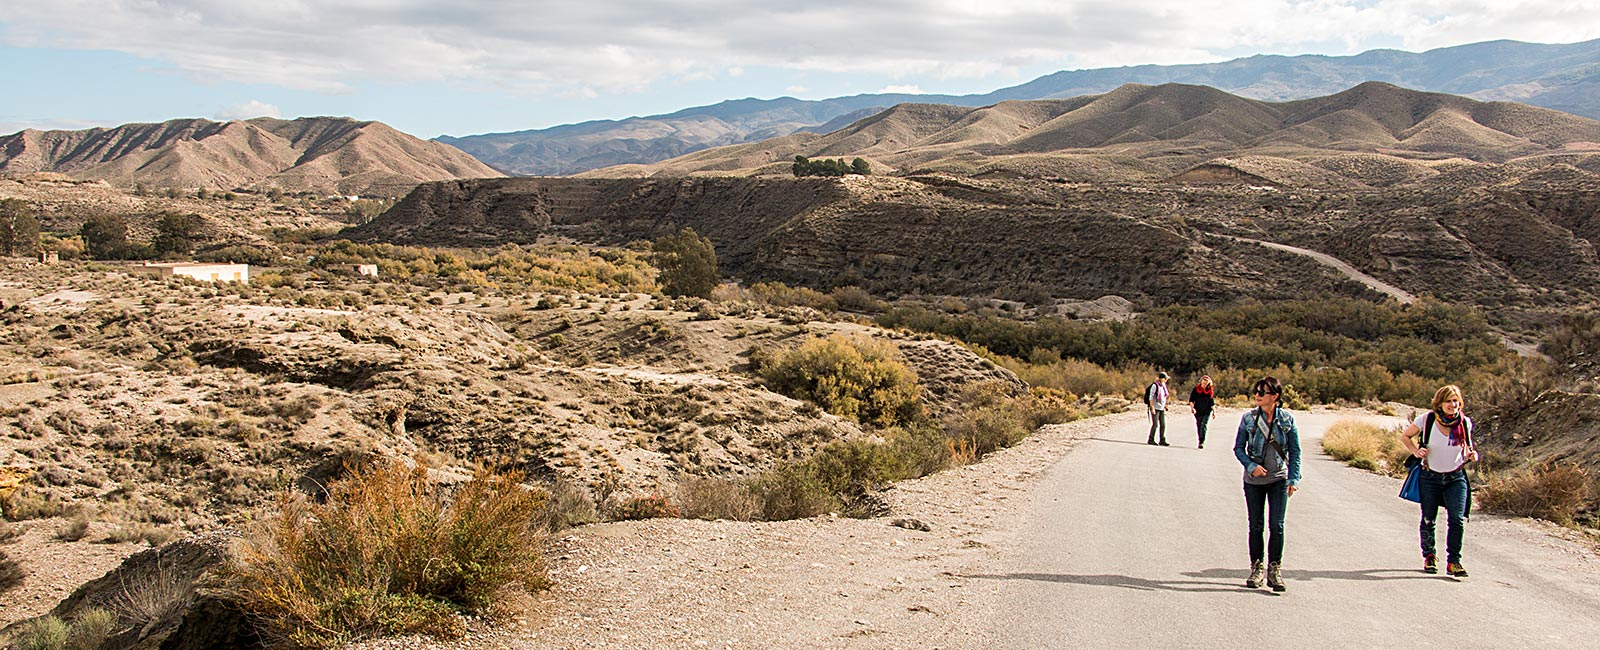 Hiking in the area of Tabernas in Andalusia